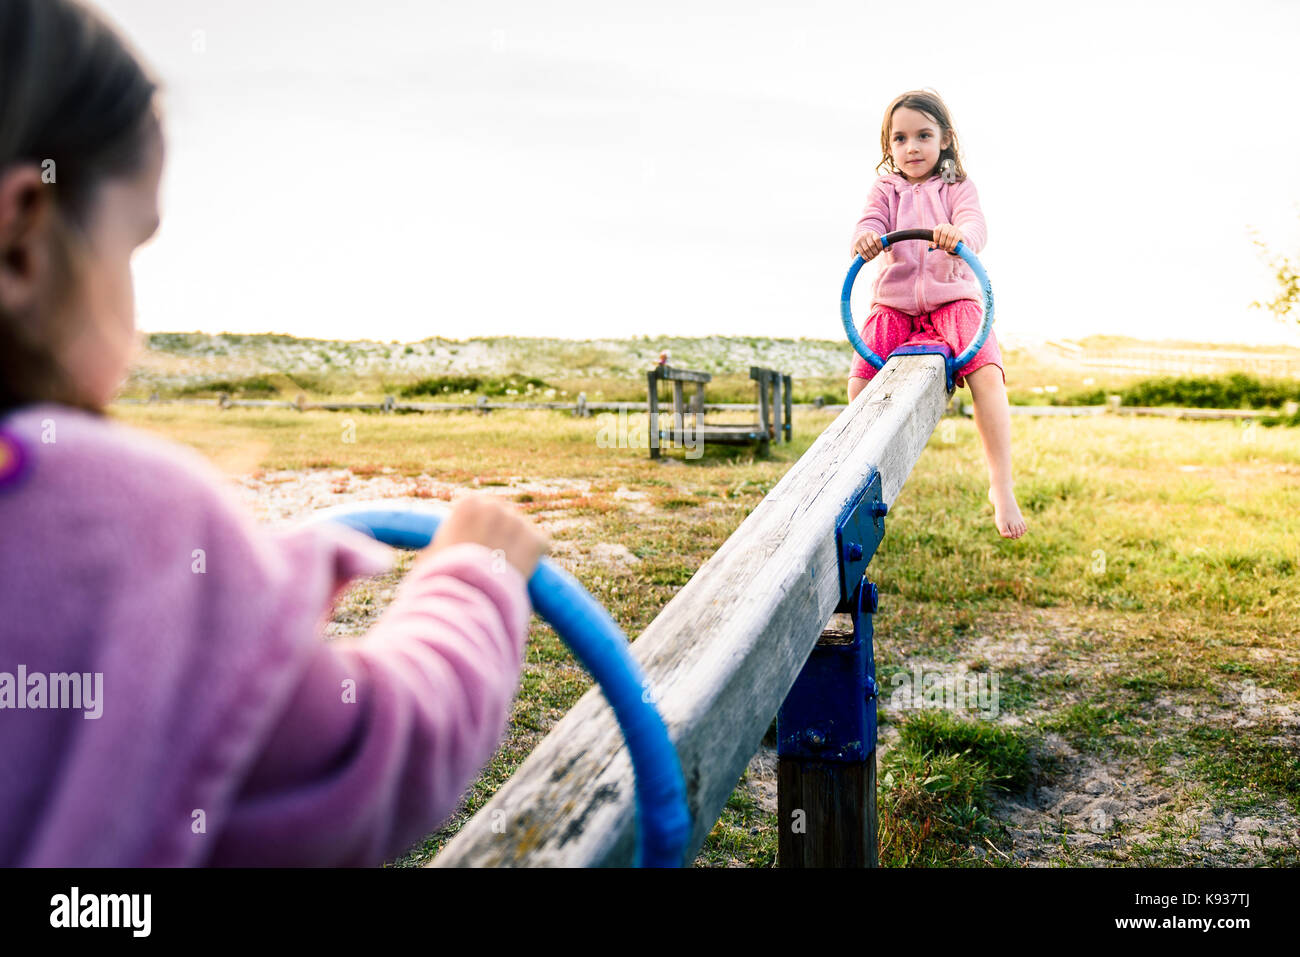 Little twin girls children are riding seesaw swing in park. Active children playing on teeter-tooter n a playground - Stock Image